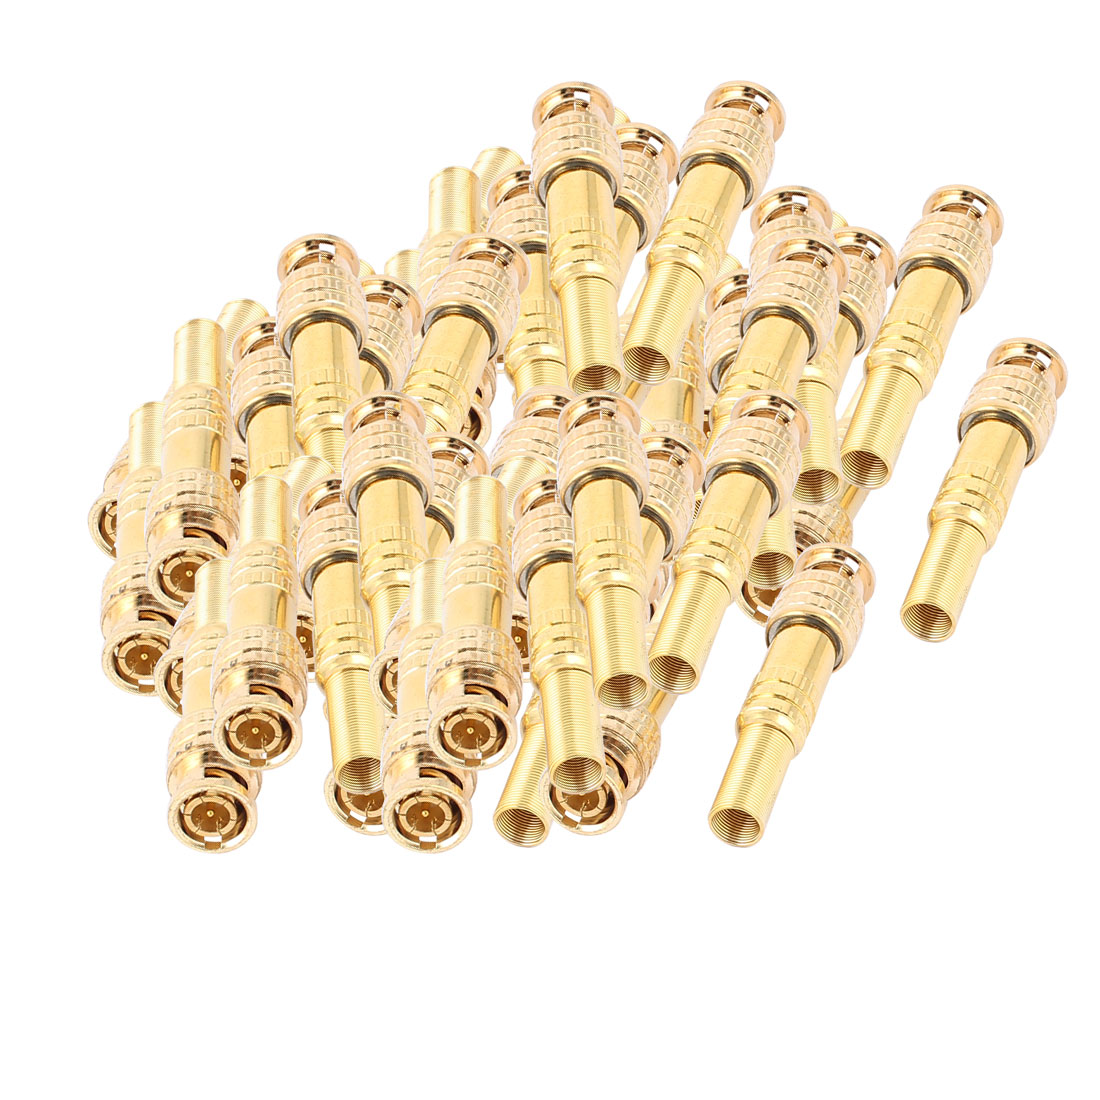 50 Pcs Twist Spring Gold-plated BNC Male Adapter Connector for CCTV Camera